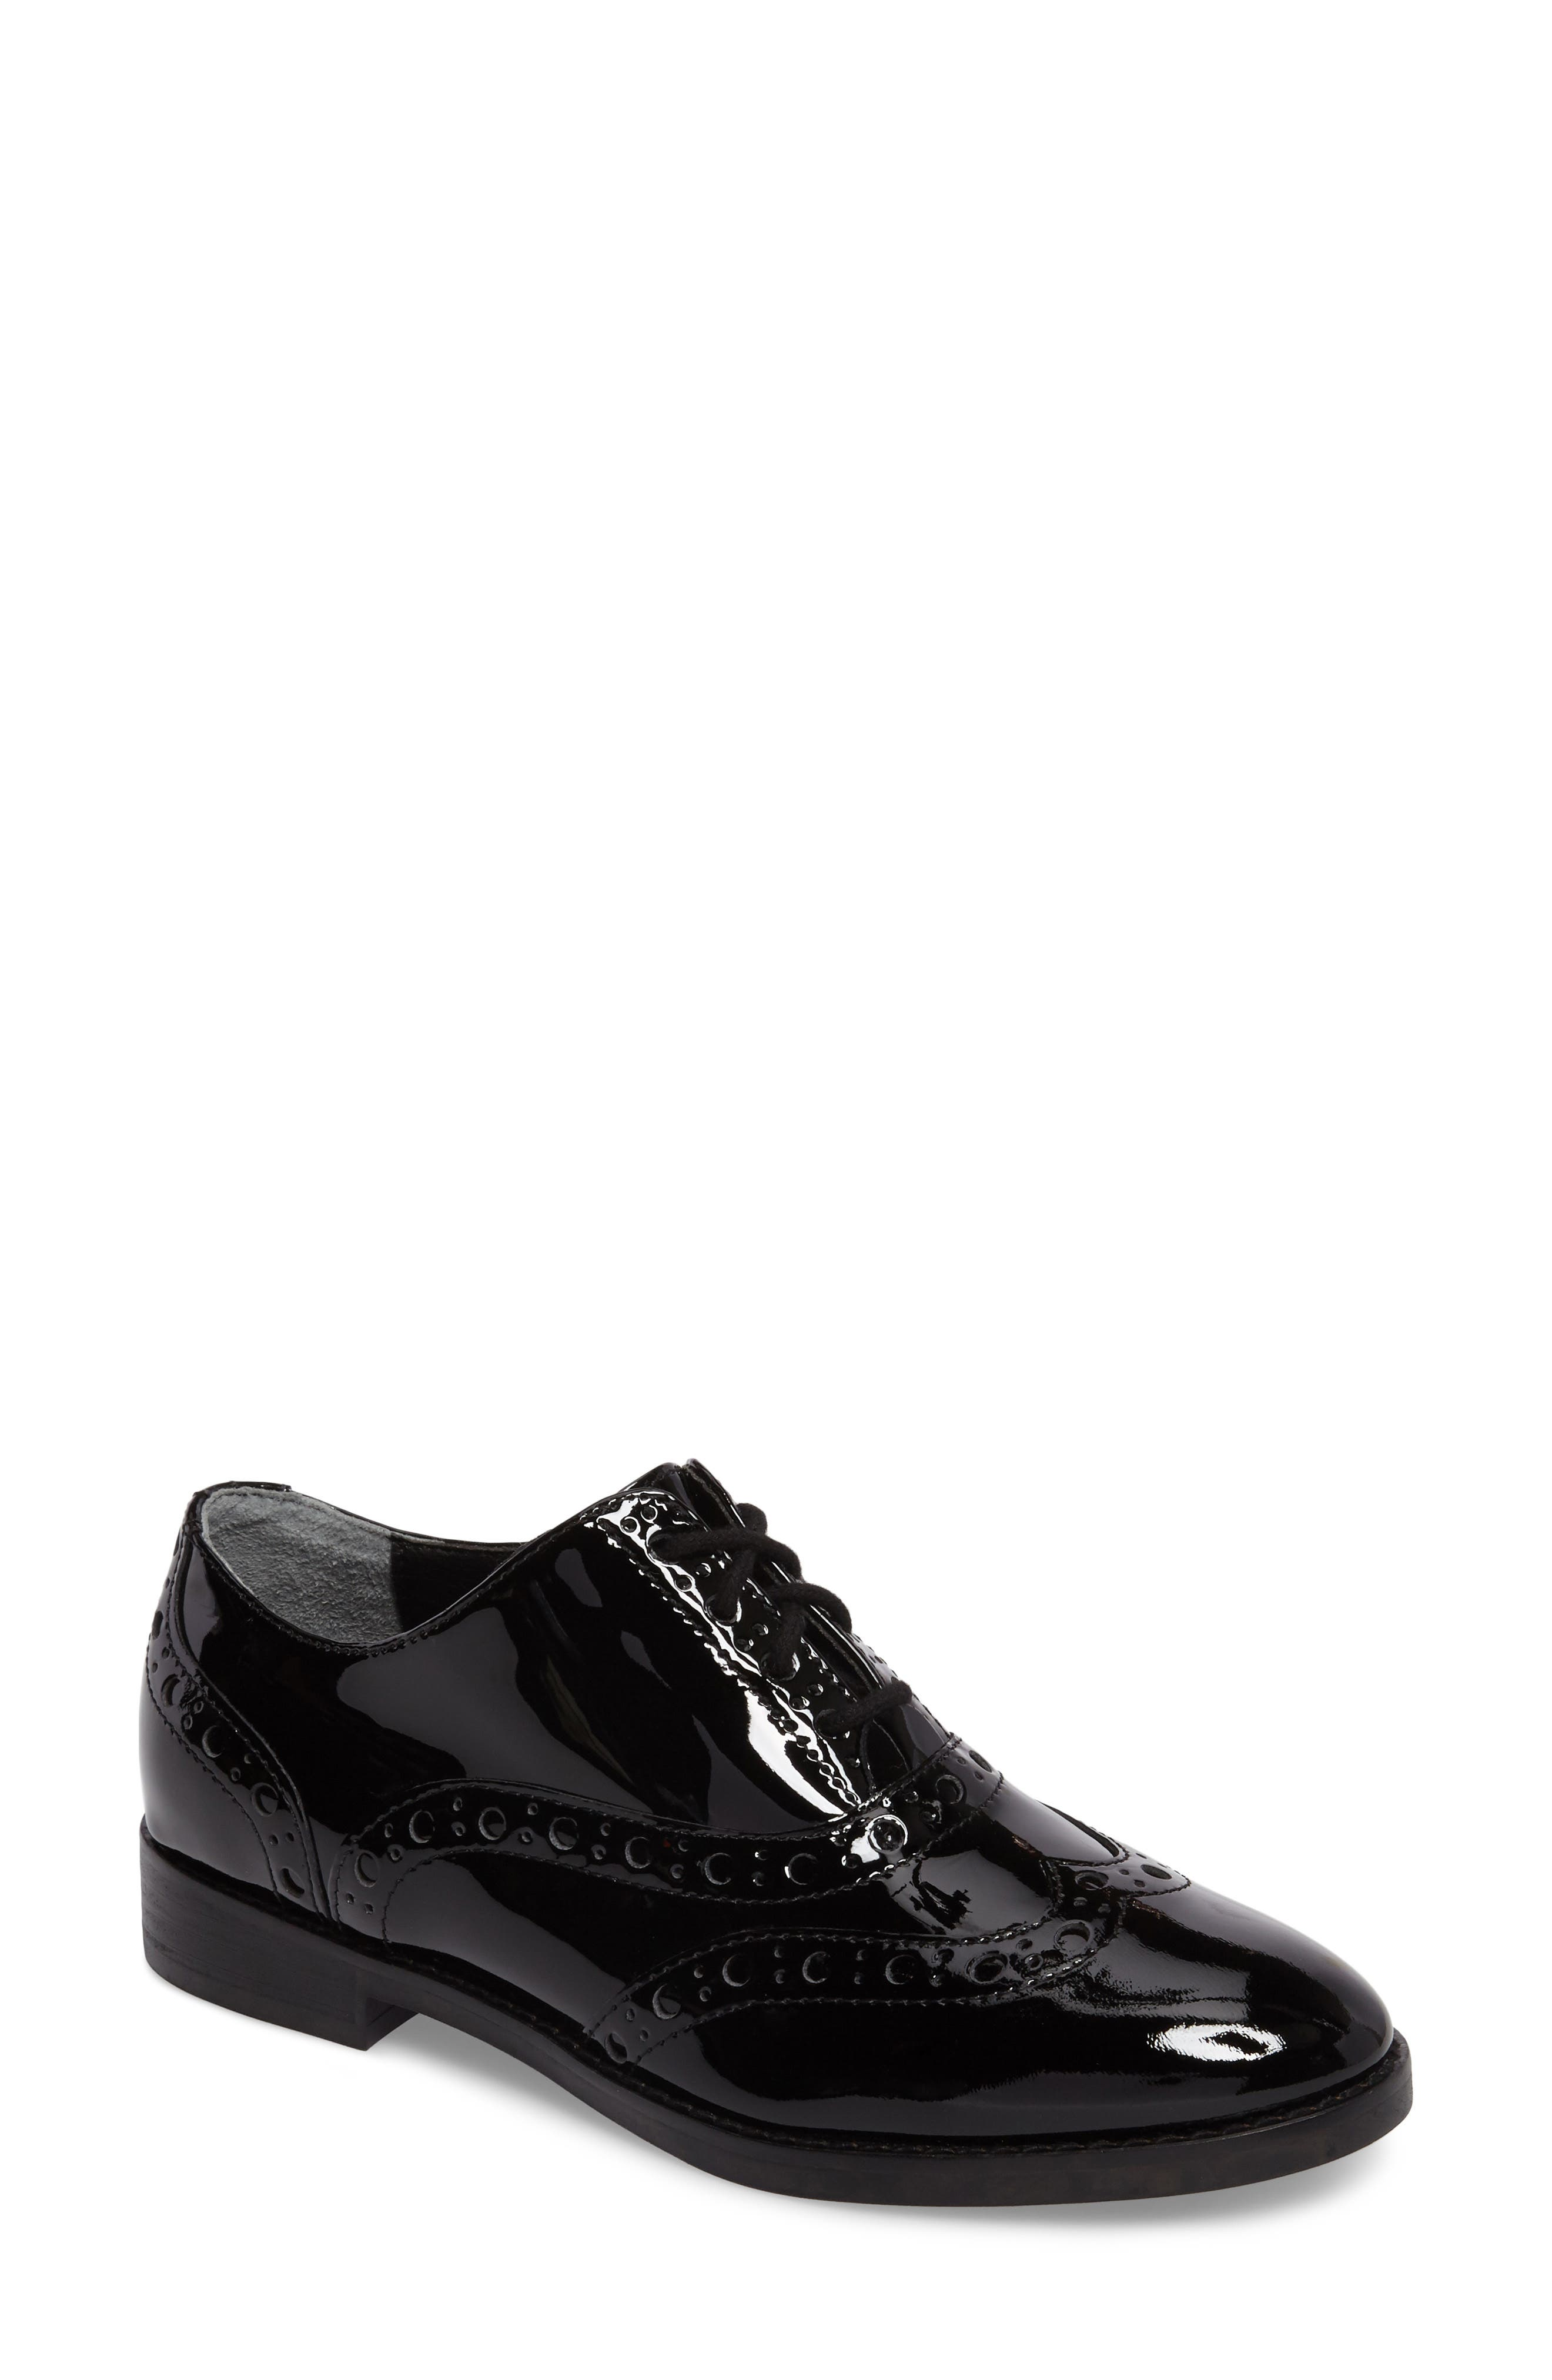 Hadley Wingtip,                             Main thumbnail 1, color,                             Black Patent Leather